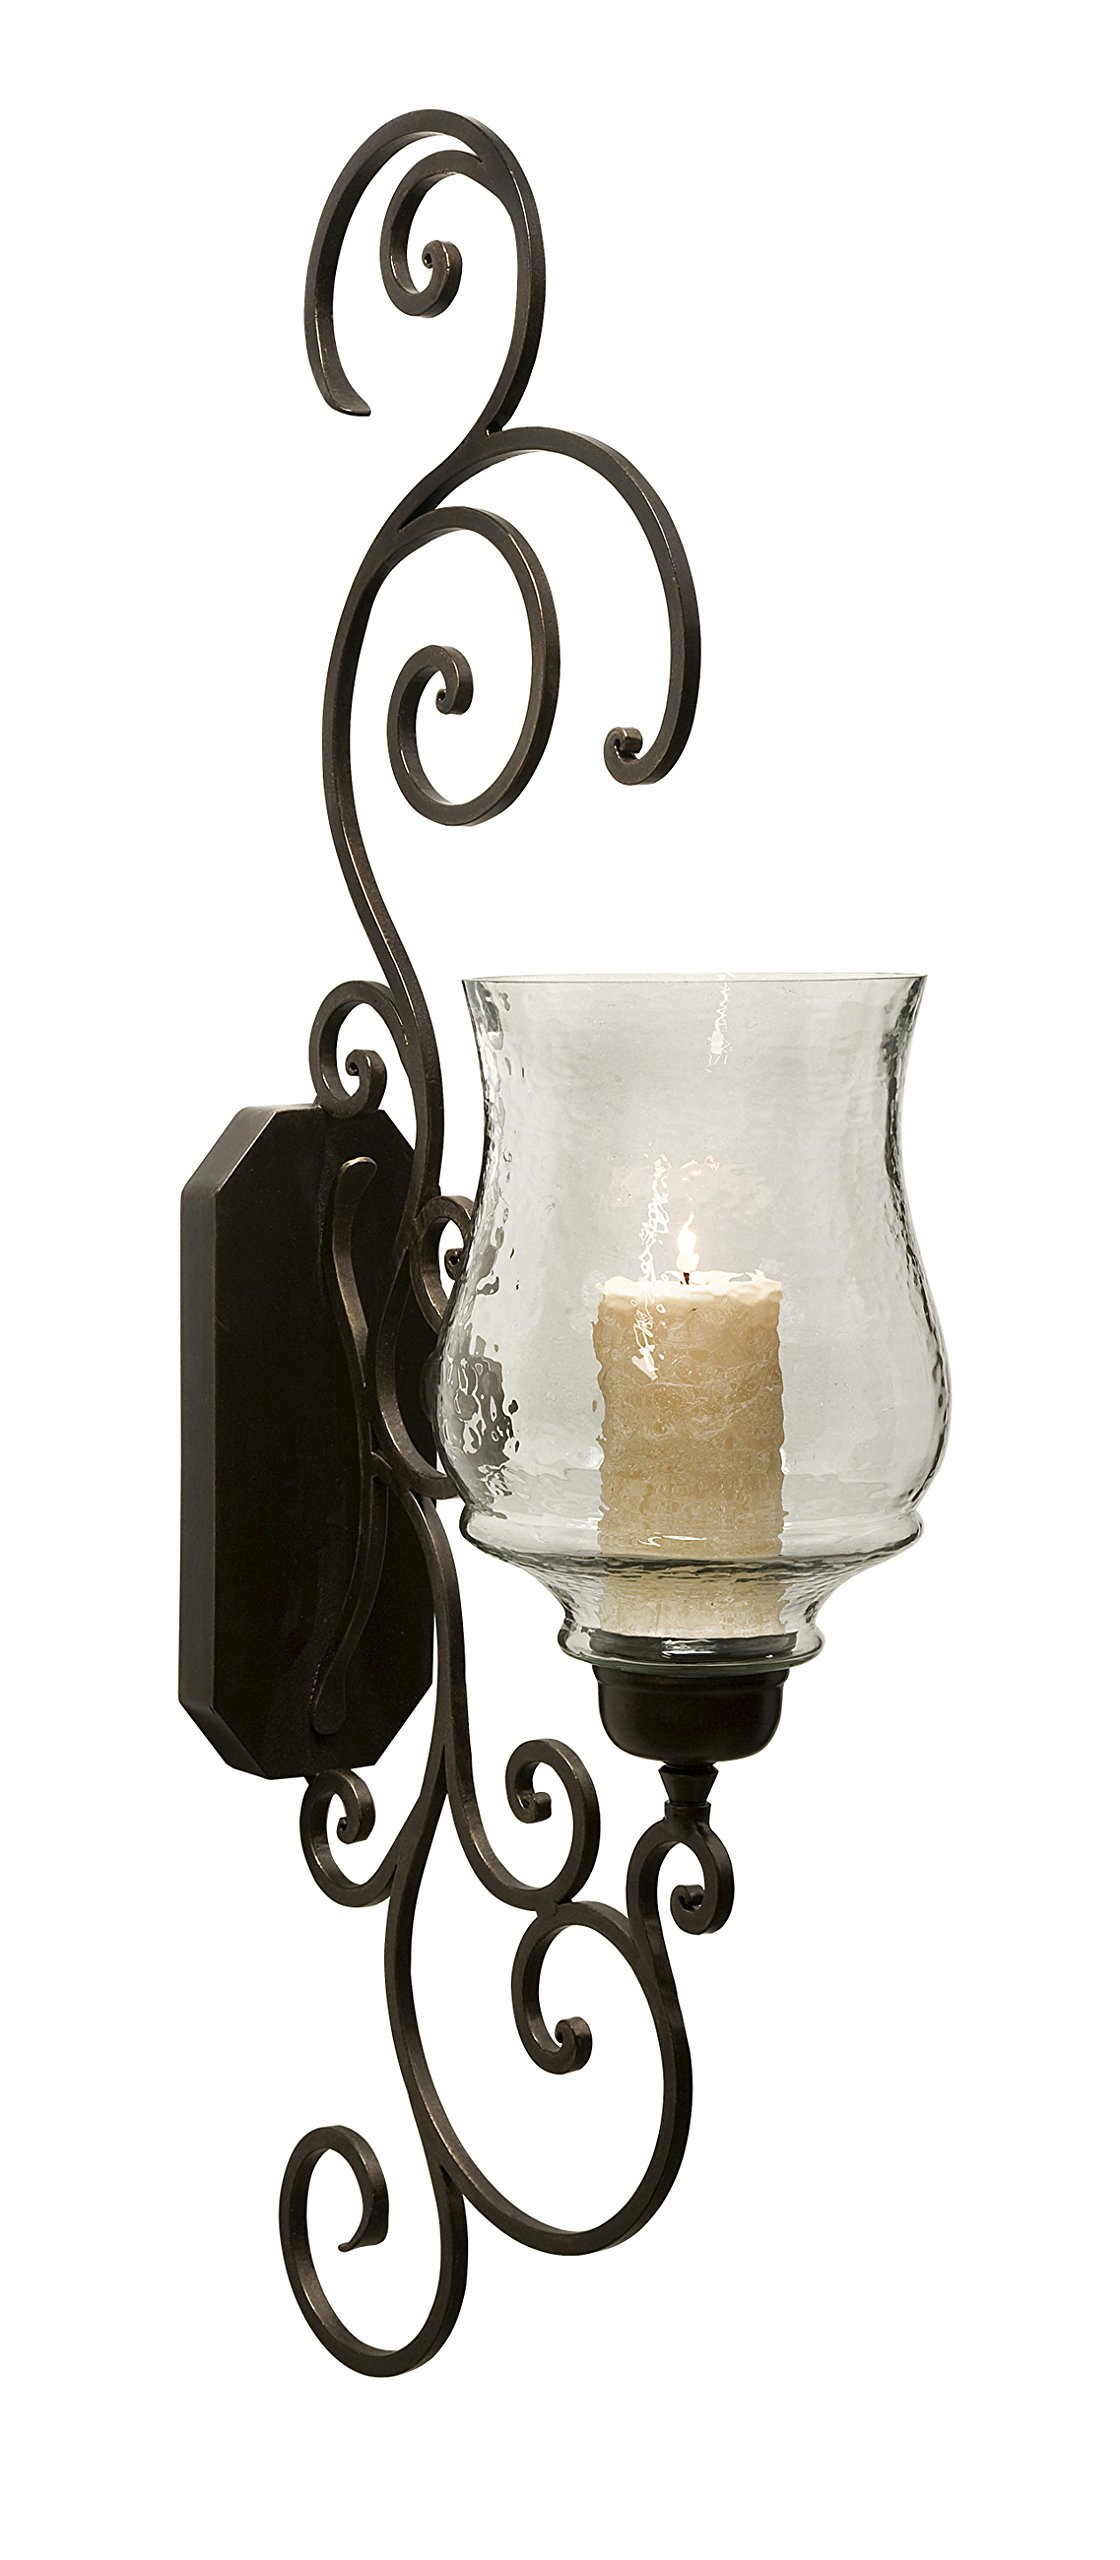 IMX-7024 Elegant Angelina Grand Scrollwork Candle Sconce by Imax